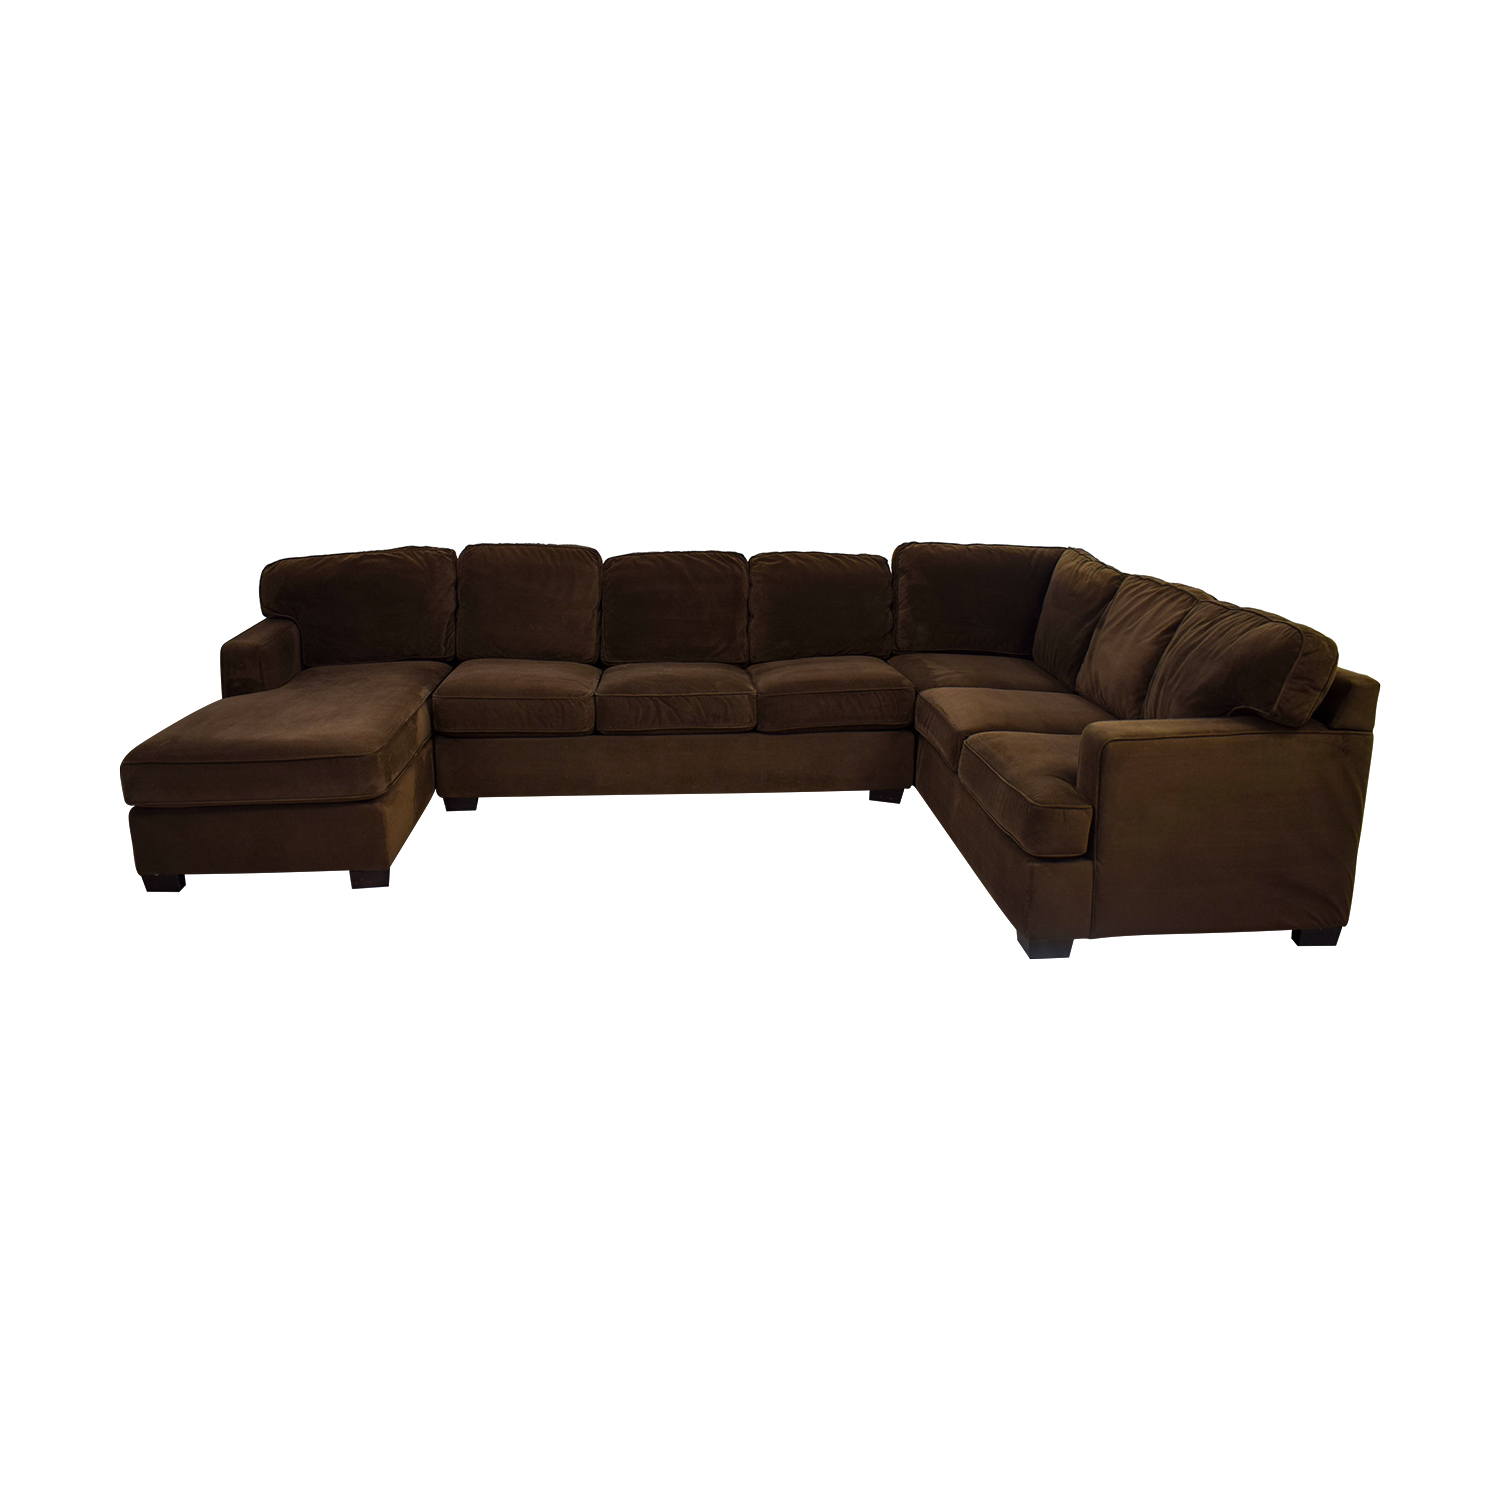 Bloomingdale's Bloomingdale's Brown Microsuede L-Shaped Chaise Sectional dimensions